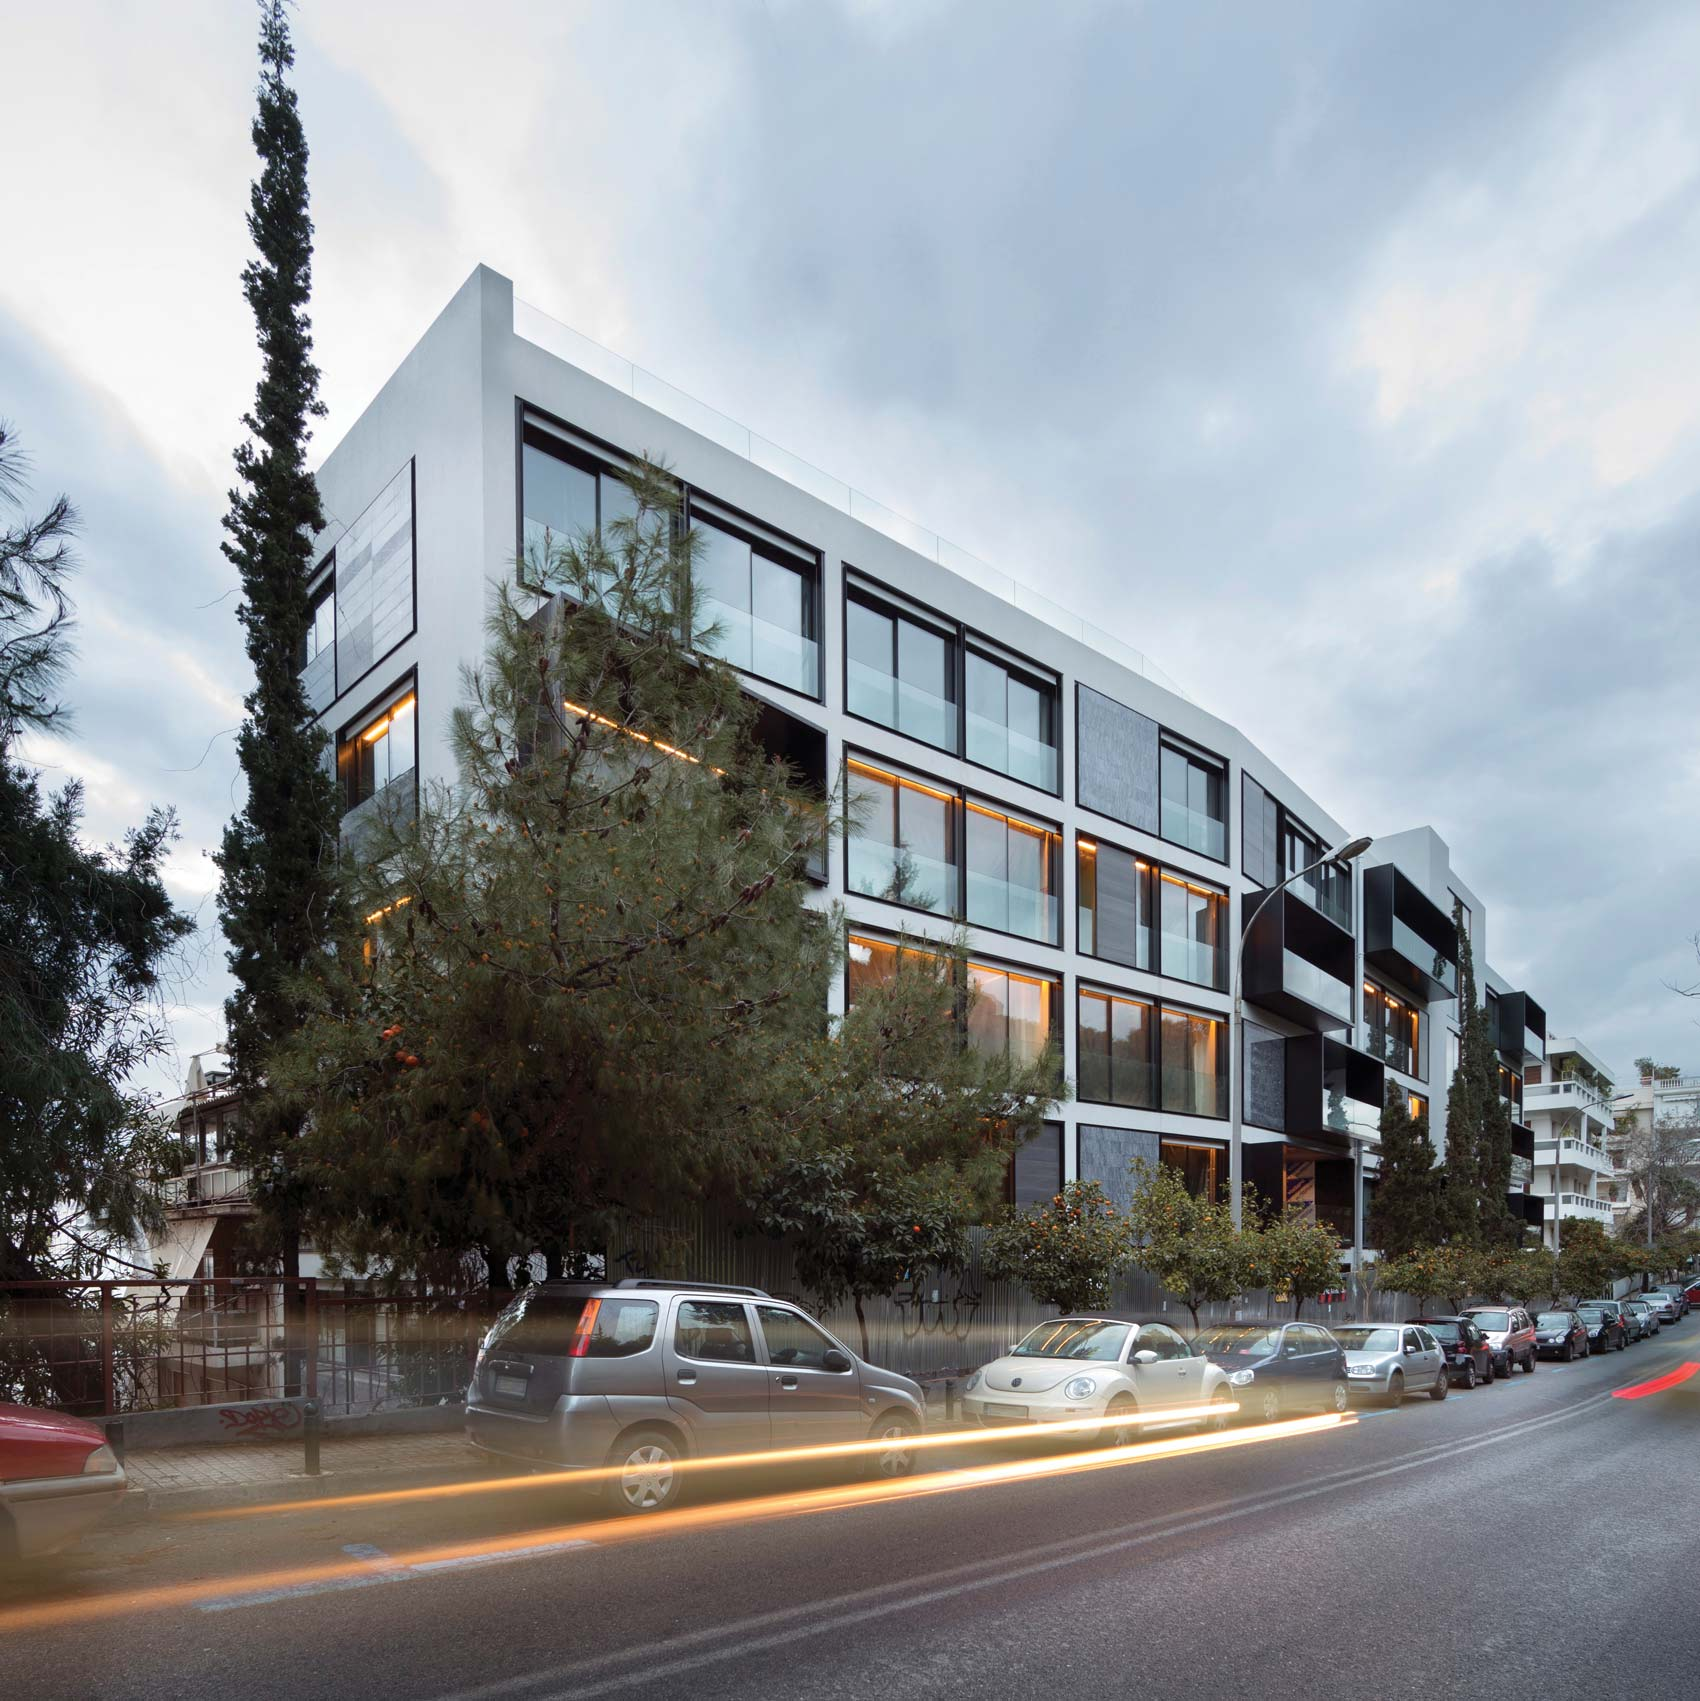 One Athens Apartment Building By Divercity Architects The Greek Foundation